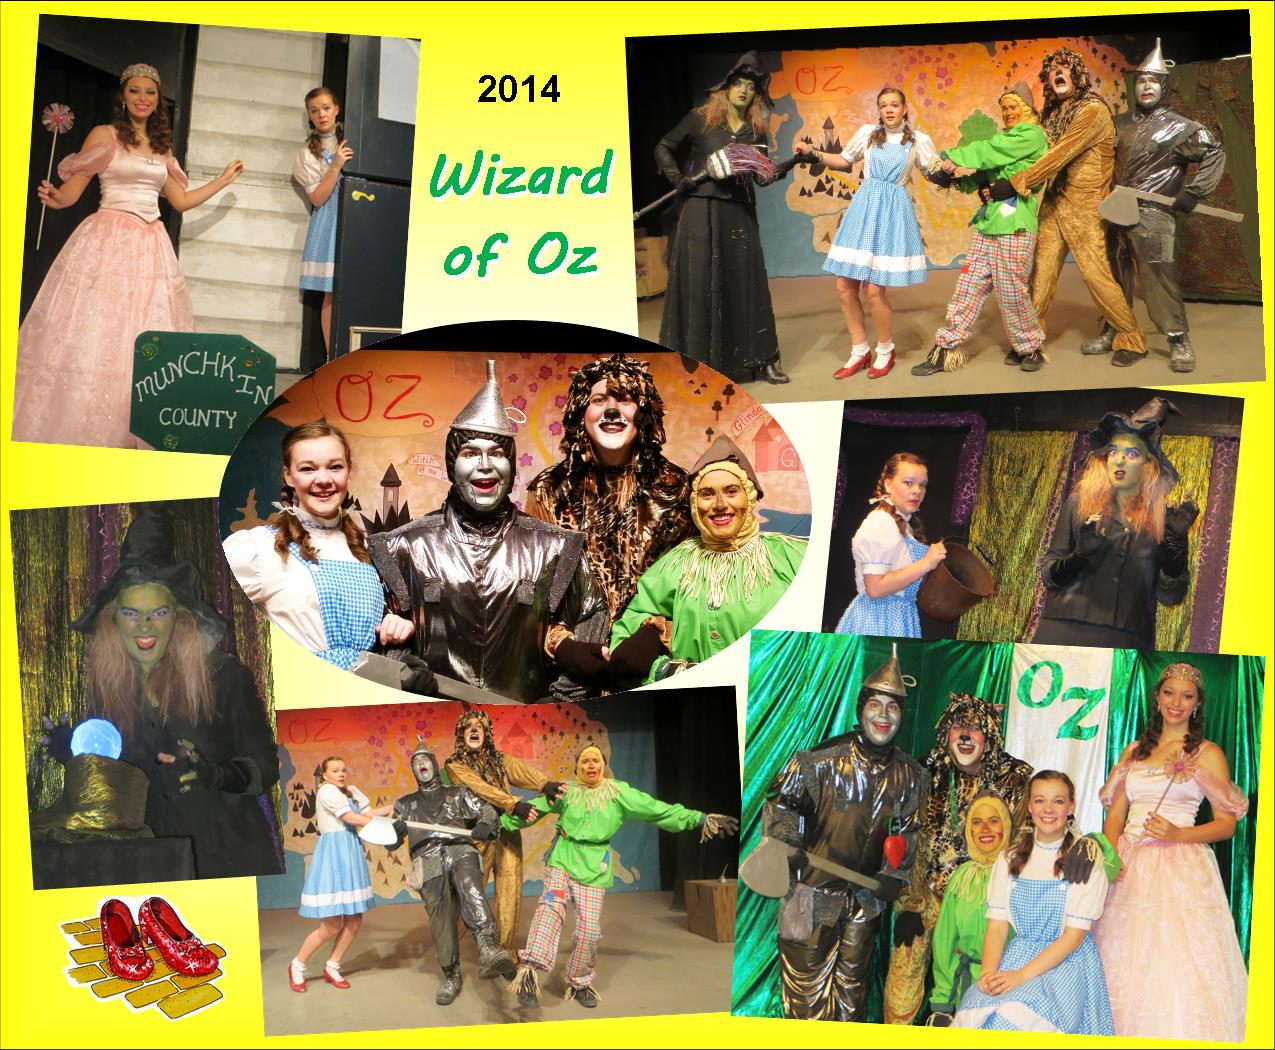 2014 Wizard of Oz